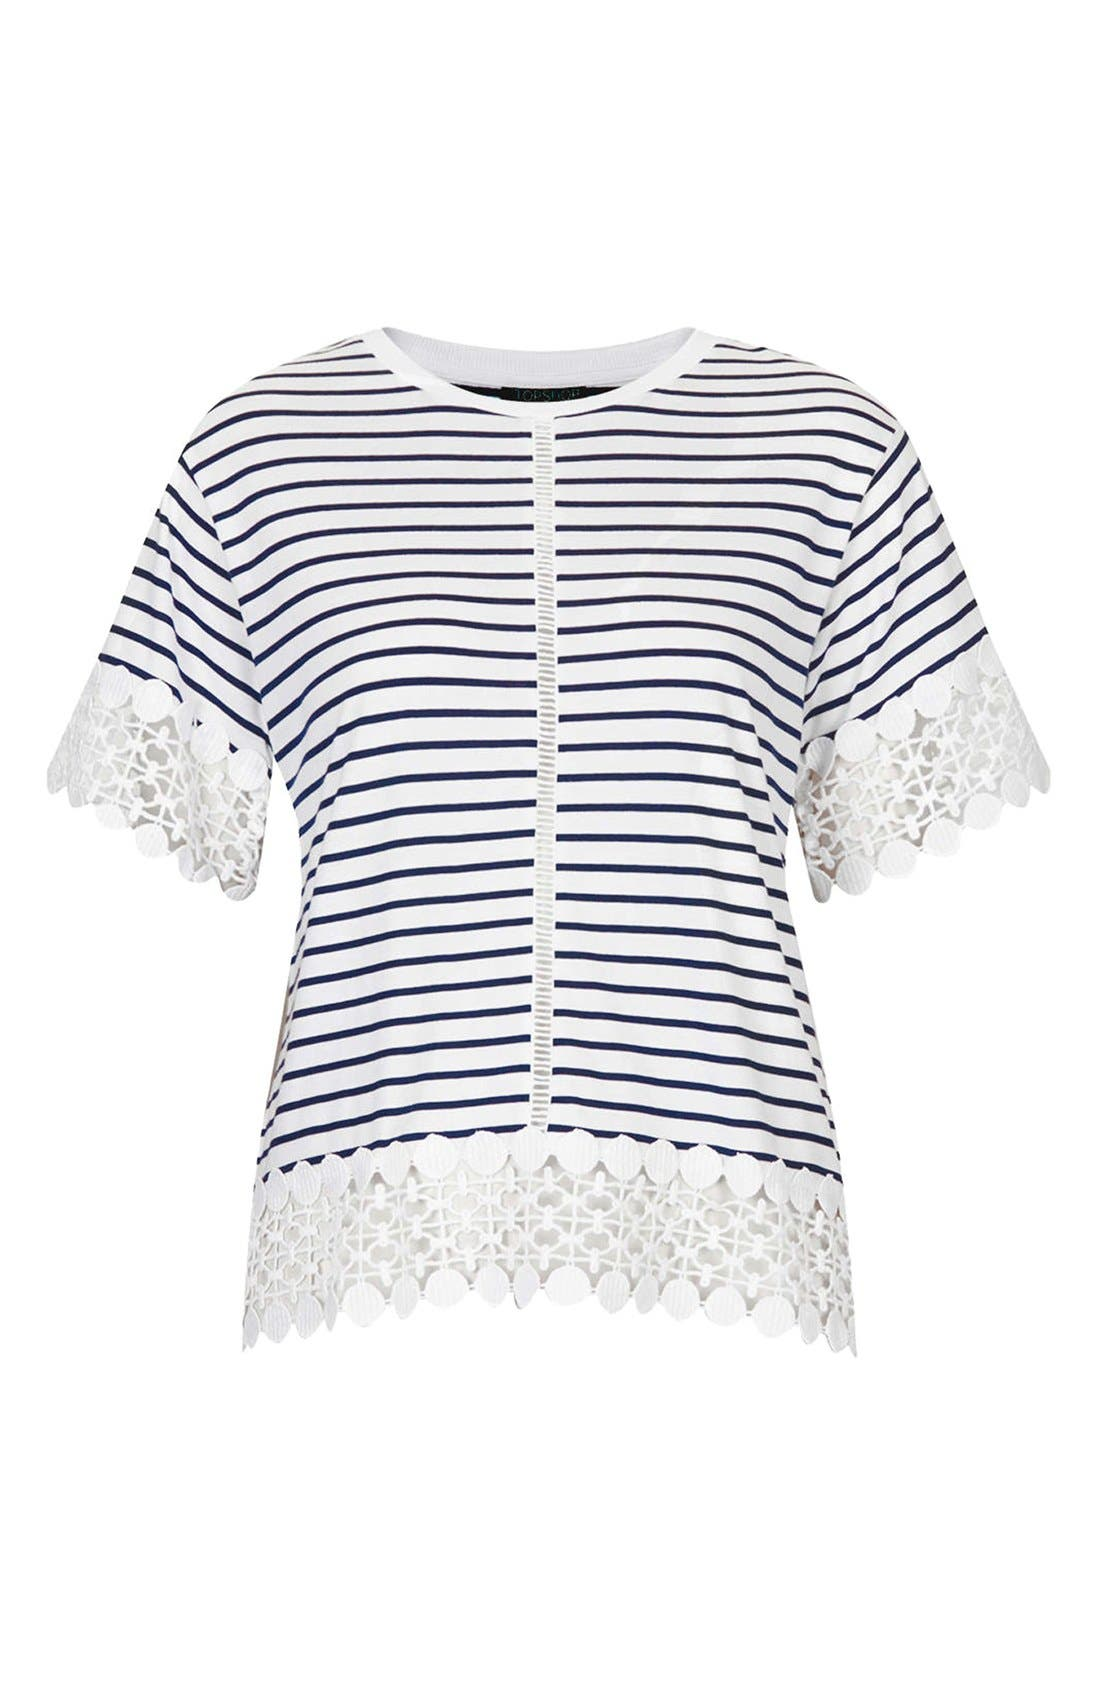 Alternate Image 3  - Topshop Lace Panel Tee